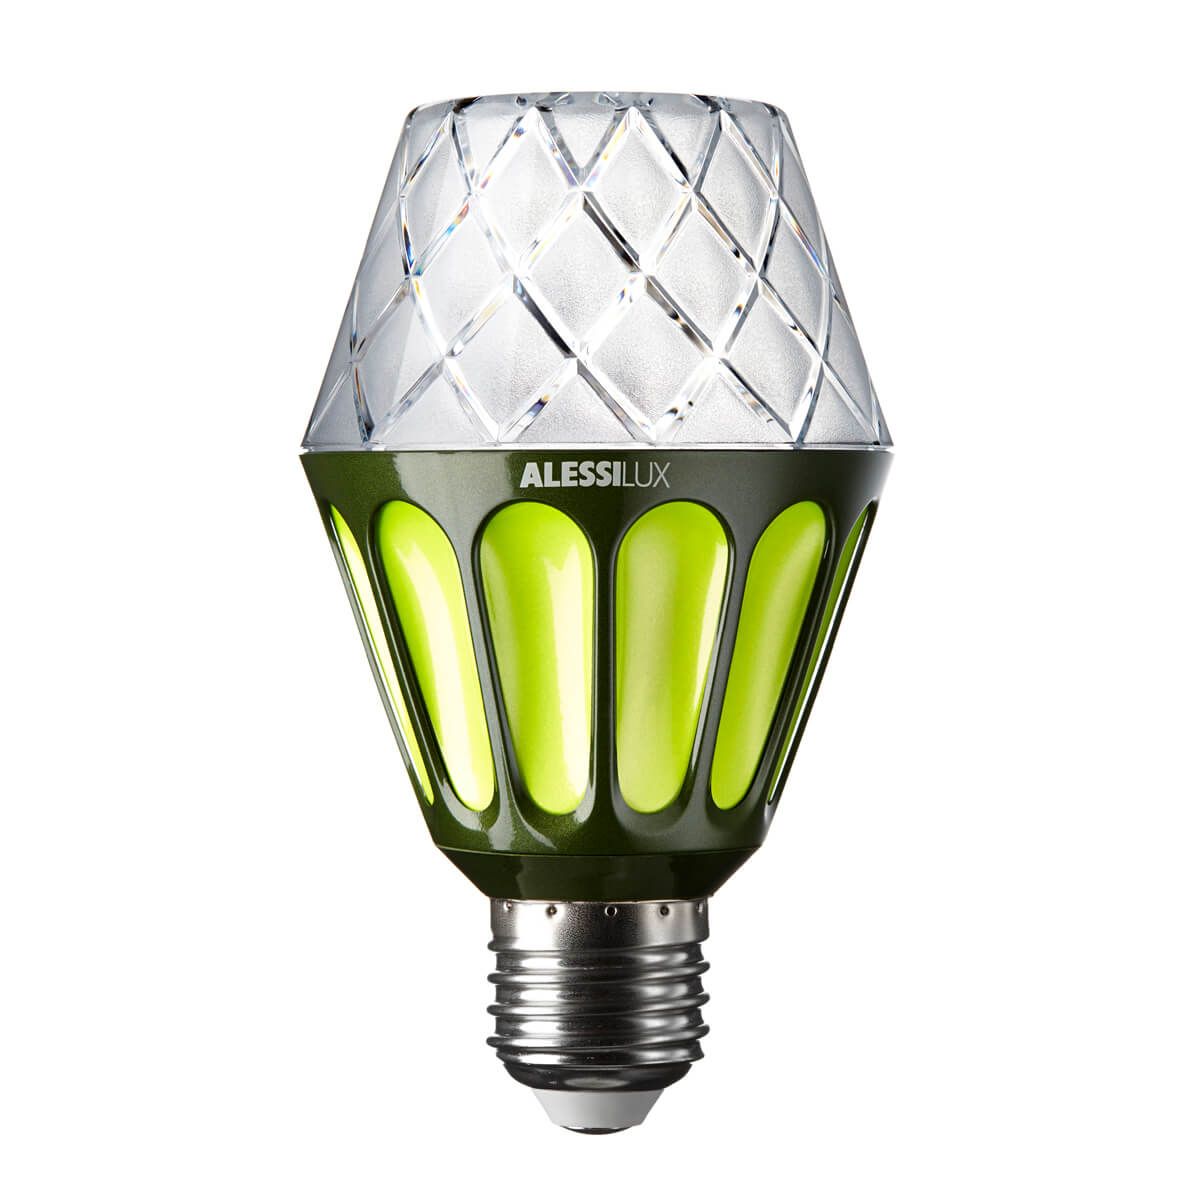 Vienna, LED light bulb for Alessilux green